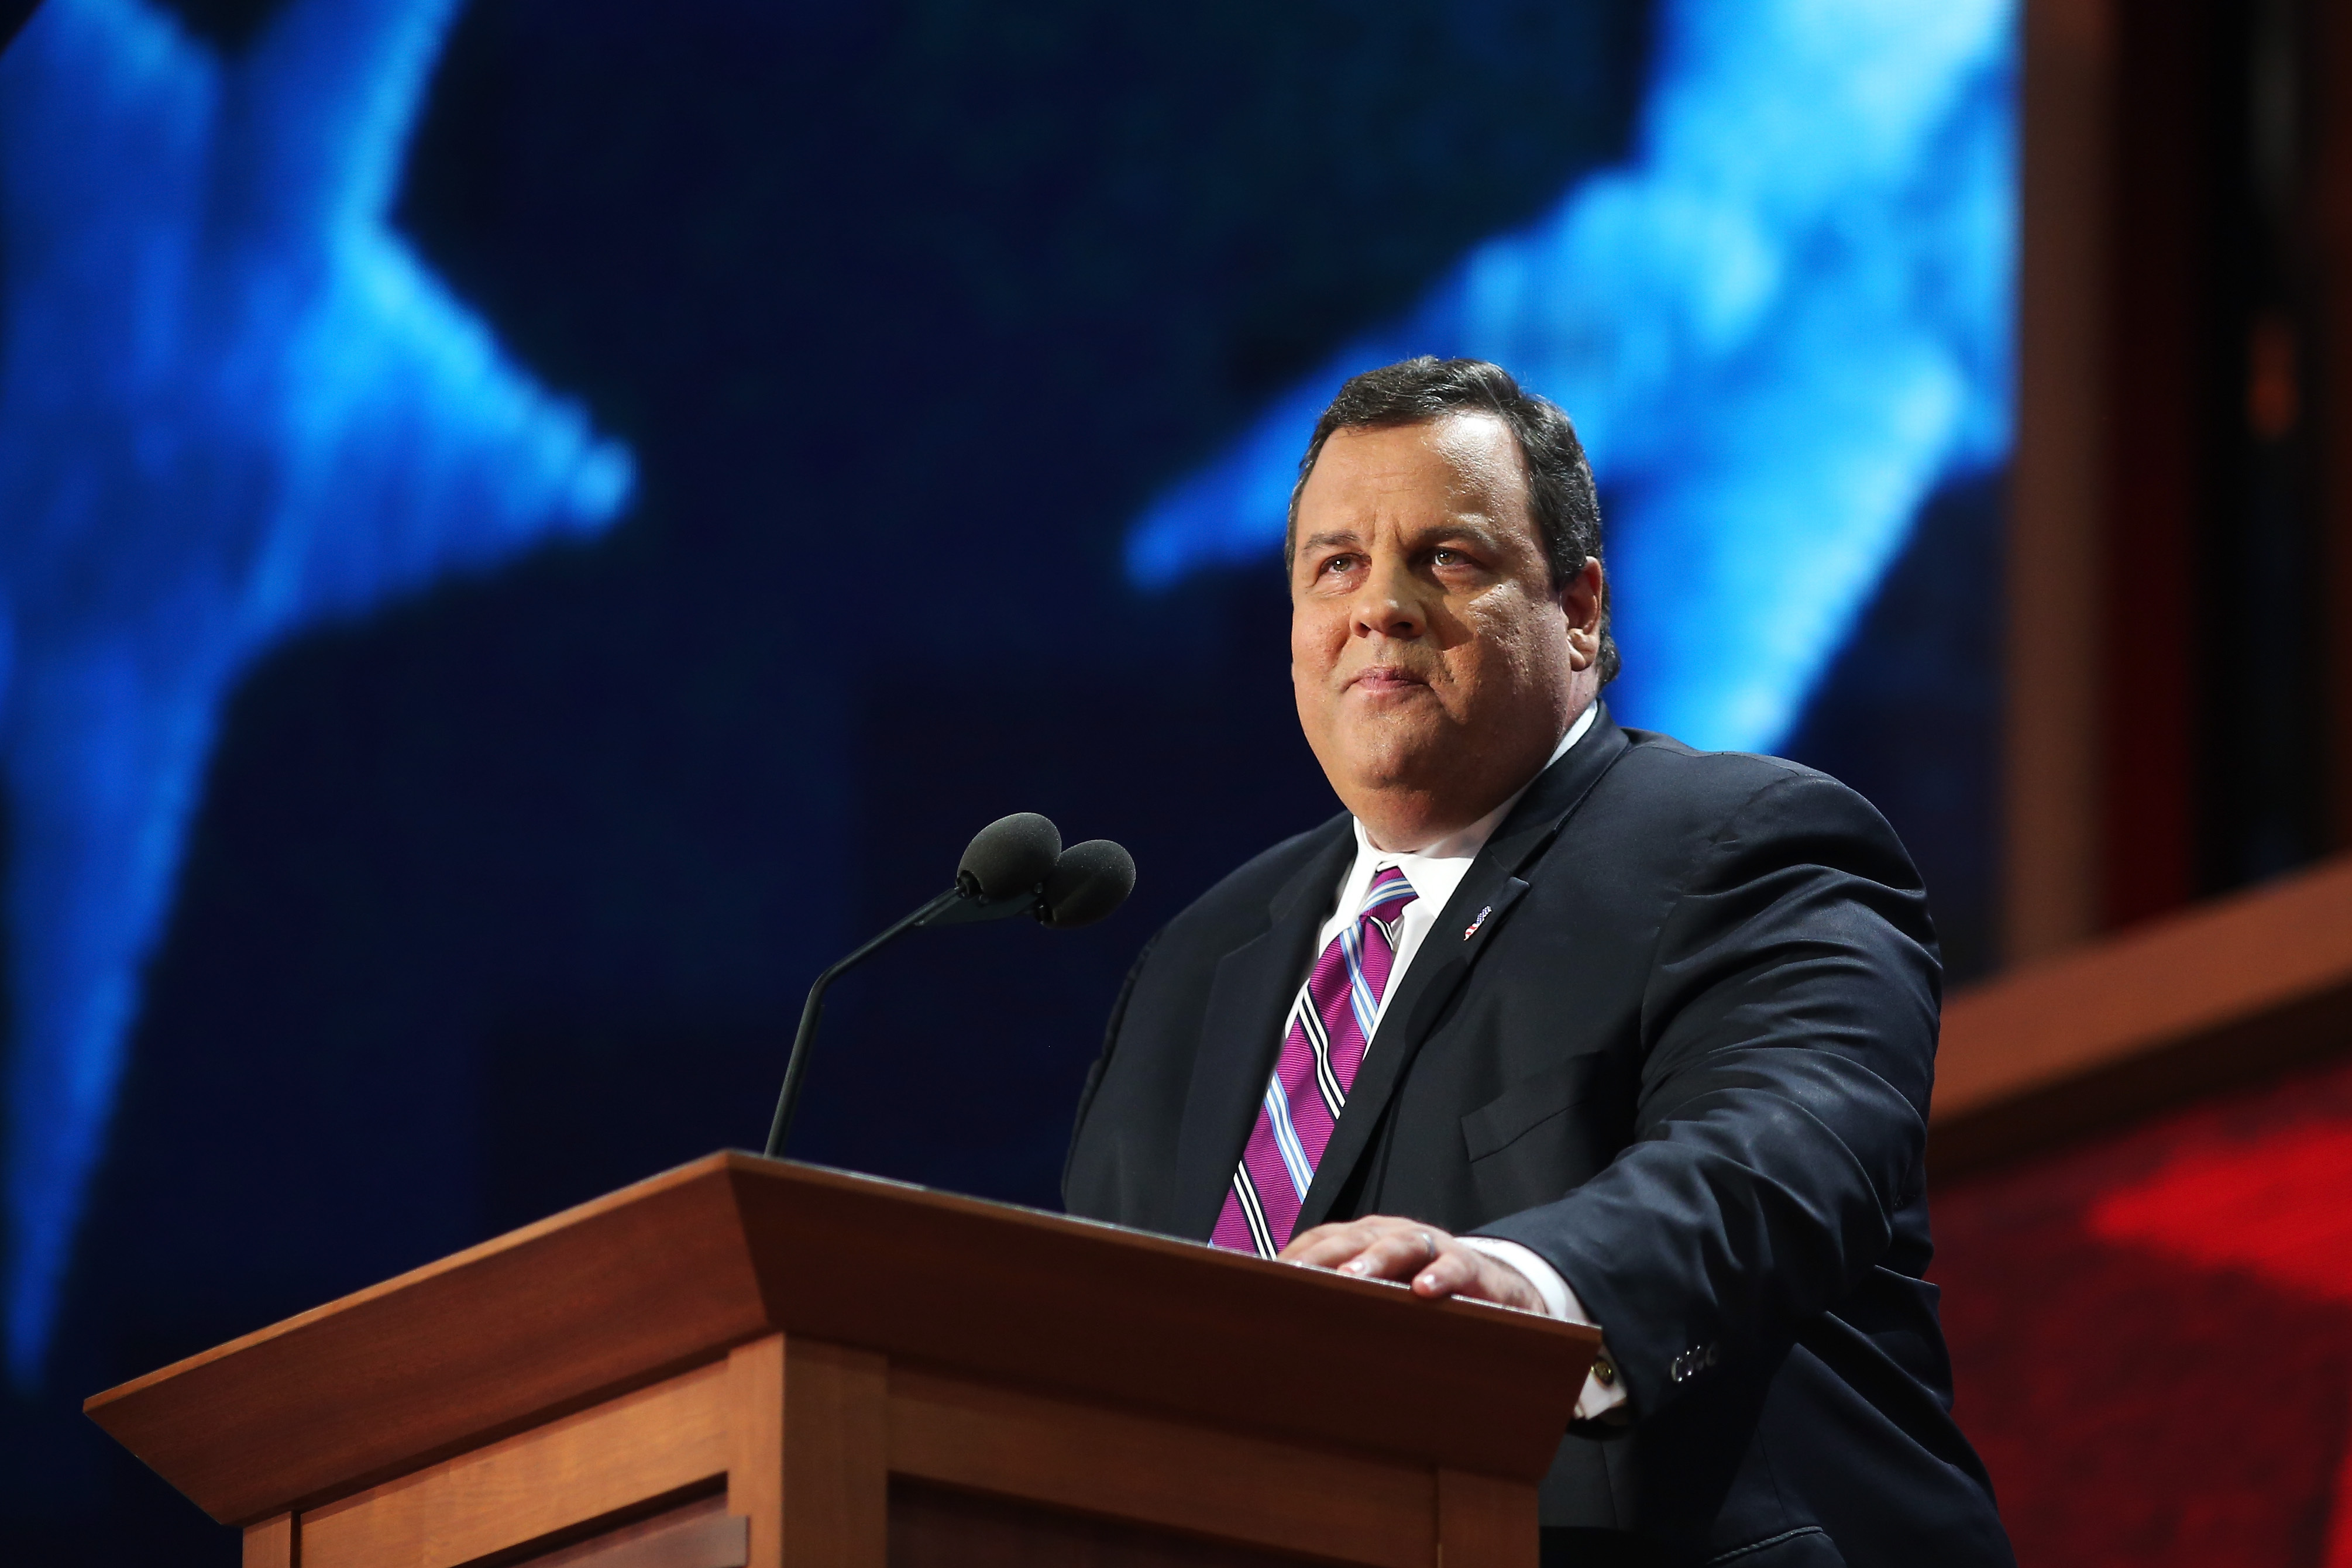 "New Jersey Gov. Chris Christie delivers the keynote address during the convention. ""There's only one thing missing now,"" says New Jersey Gov. Chris Christie. ""Leadership. It takes leadership that you don't get from reading a poll. You see, Mr. President - real leaders don't follow polls. Real leaders change polls."""